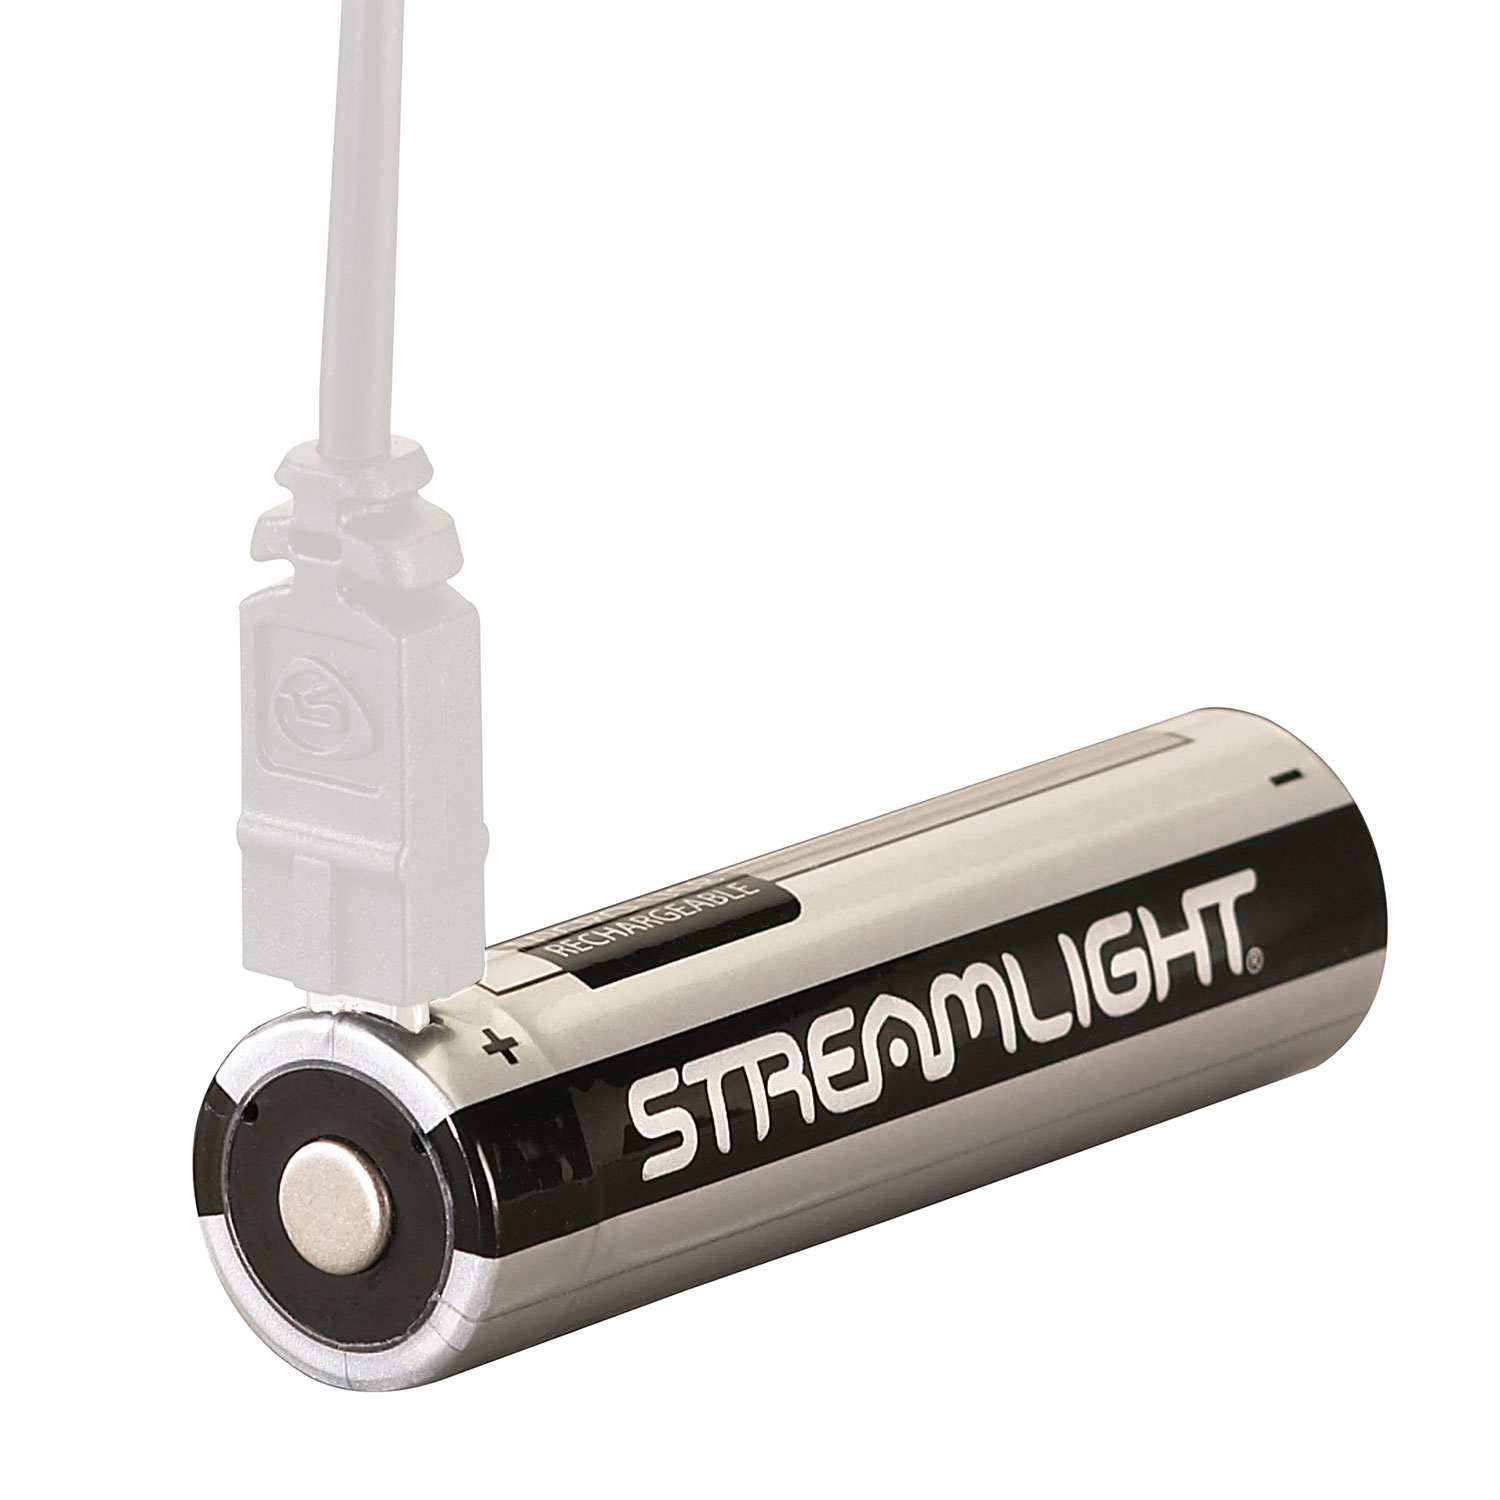 Streamlight Usb 18650 Rechargeable Lithium Ion Battery 2pk